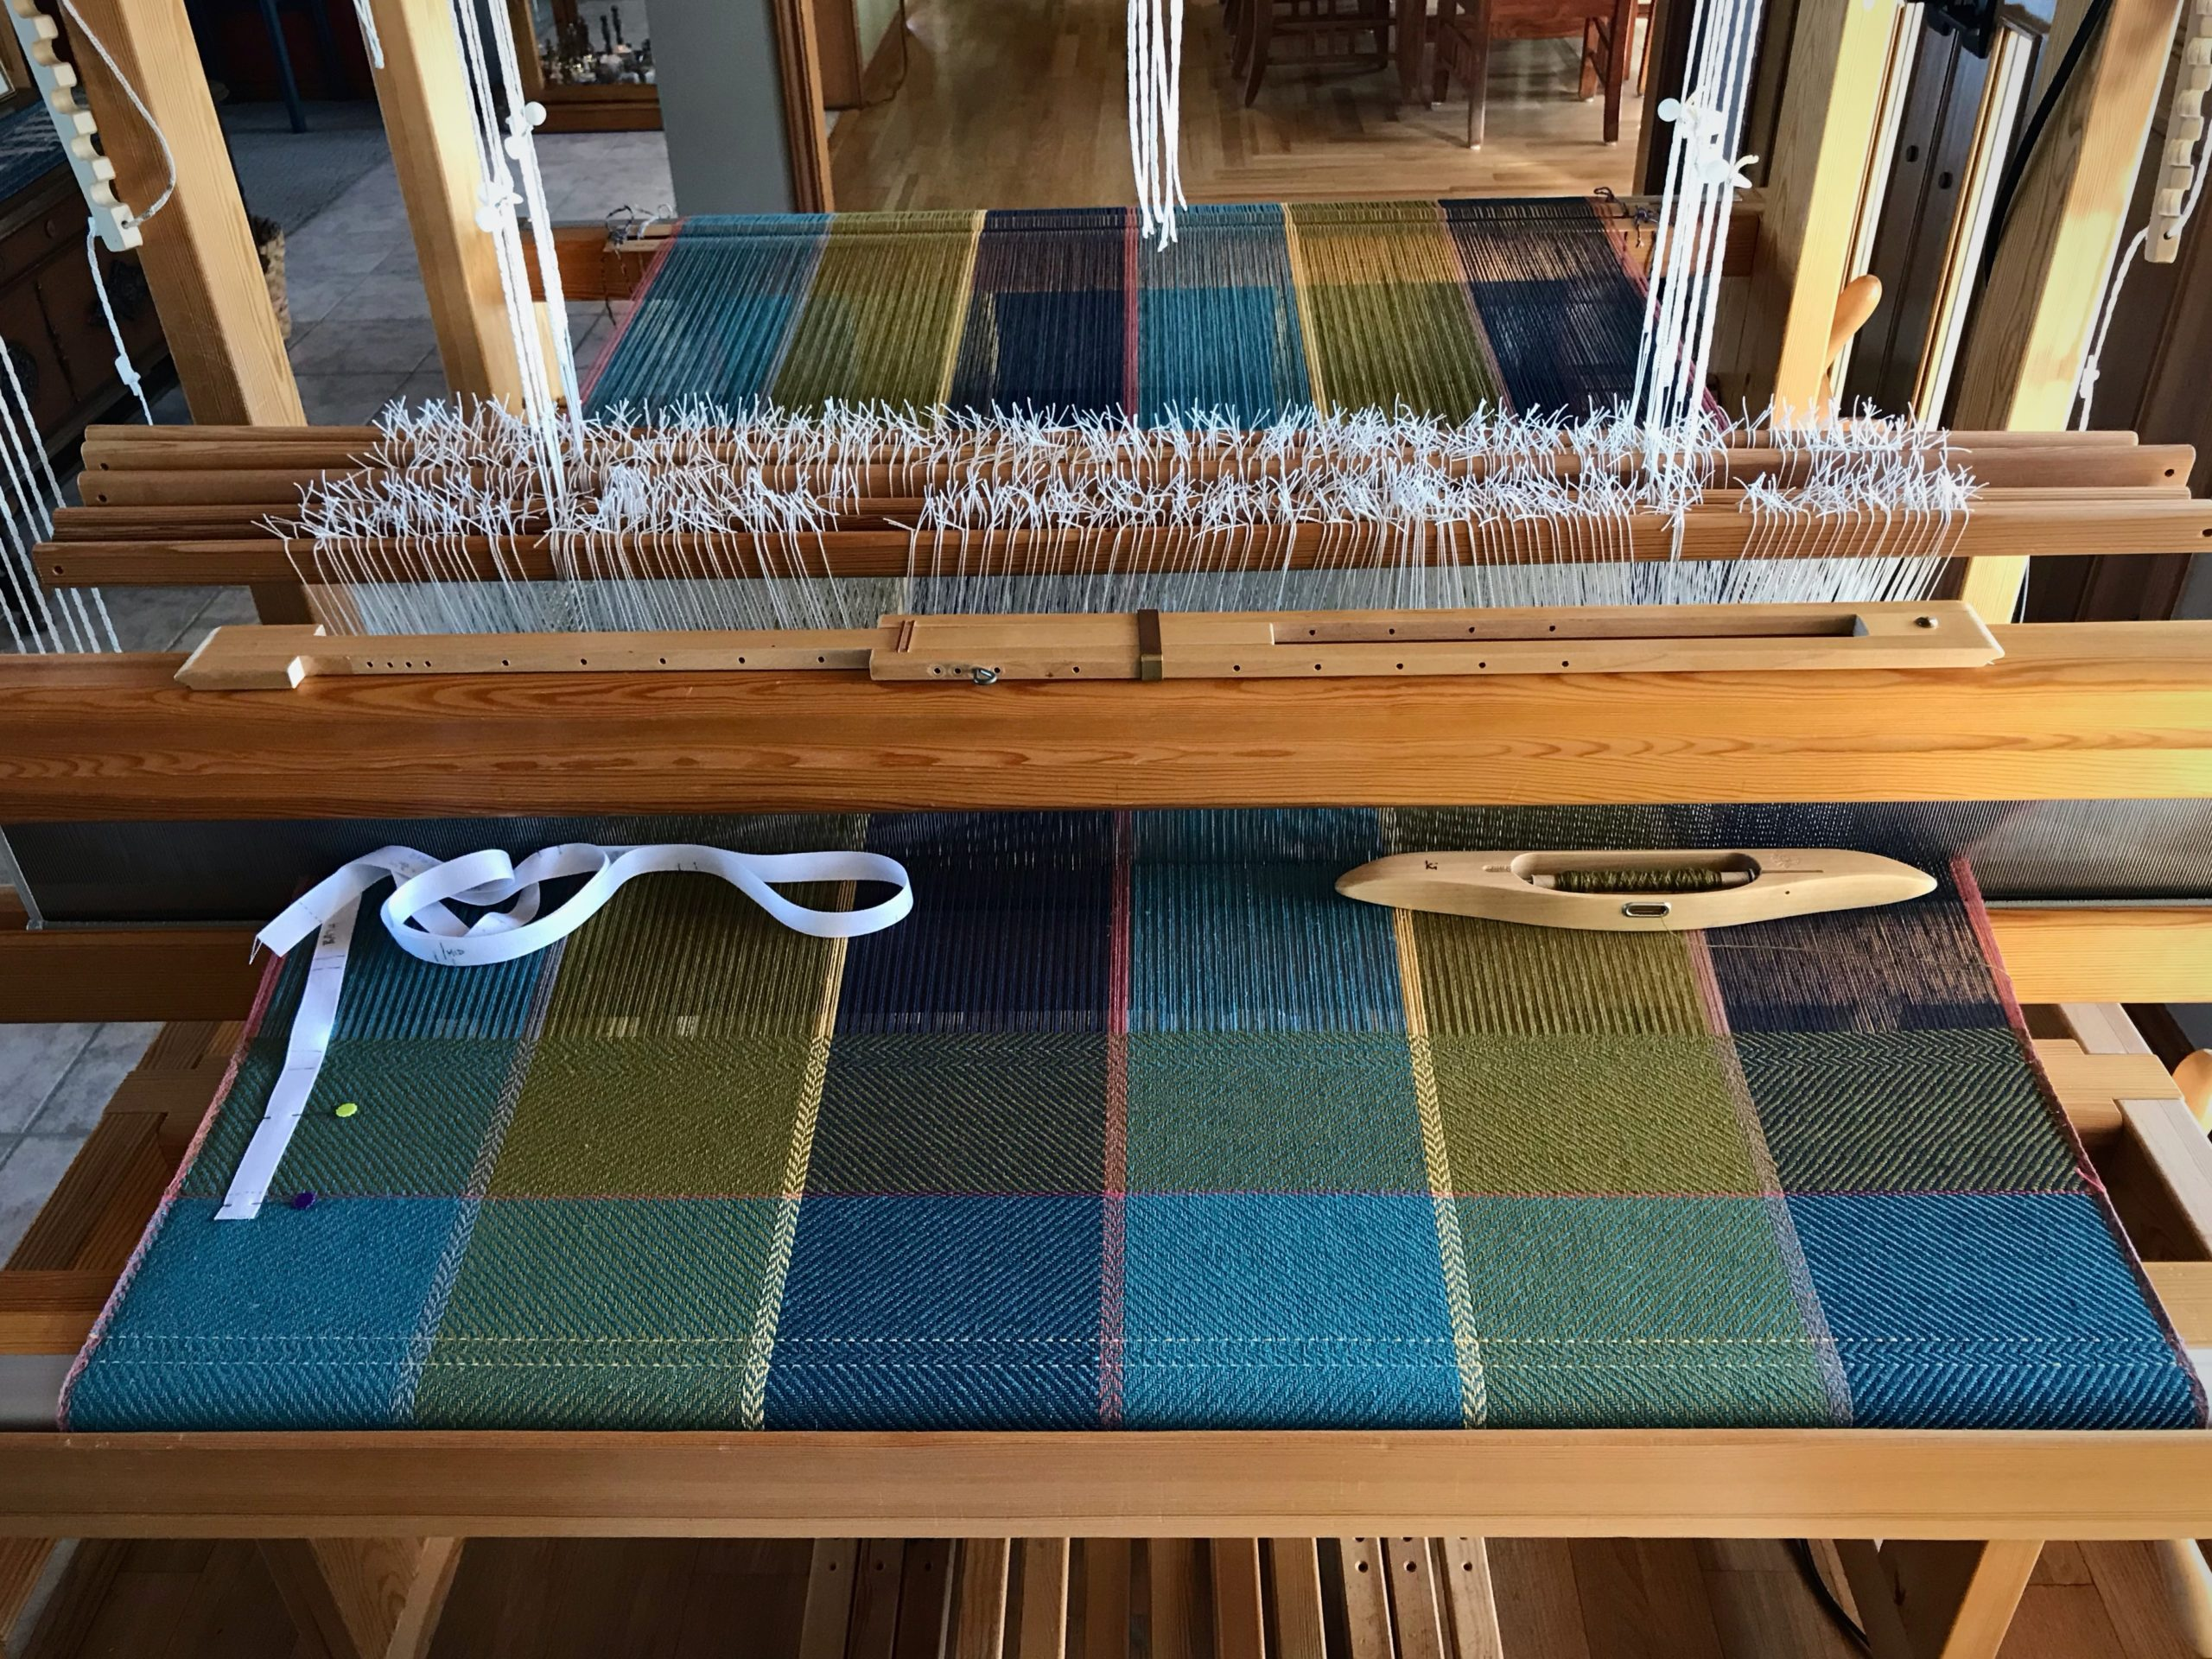 Weaving bath towels on the Glimakra Standard.